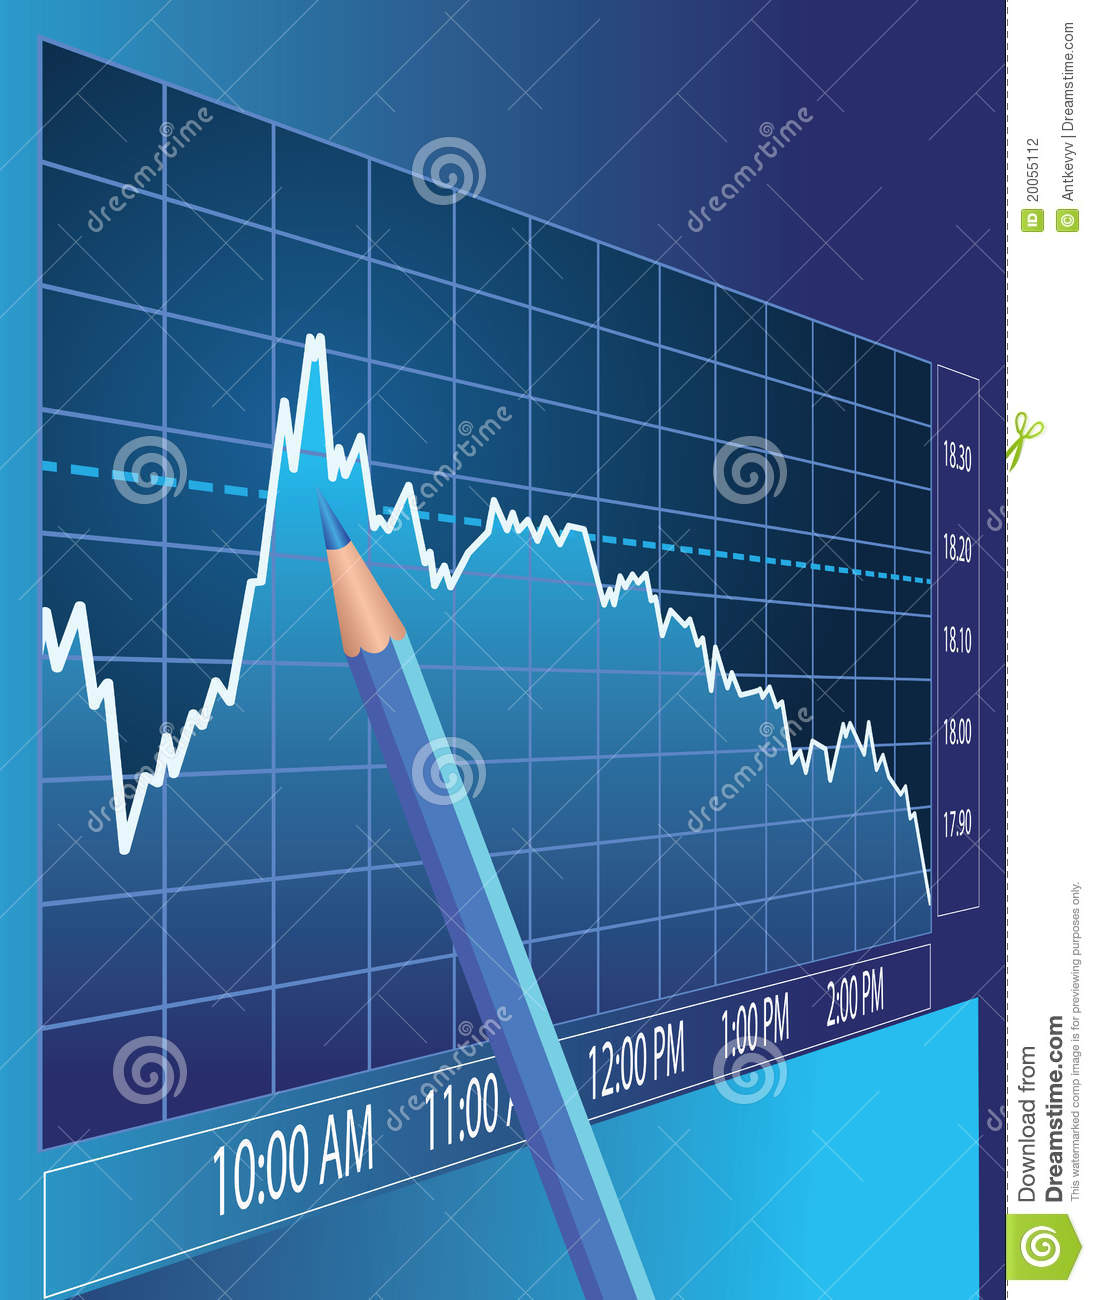 stock analysis Stock analysis software won't make you a stock market pro, but it can improve your success, whether you are a long-term investor or a stock trader.